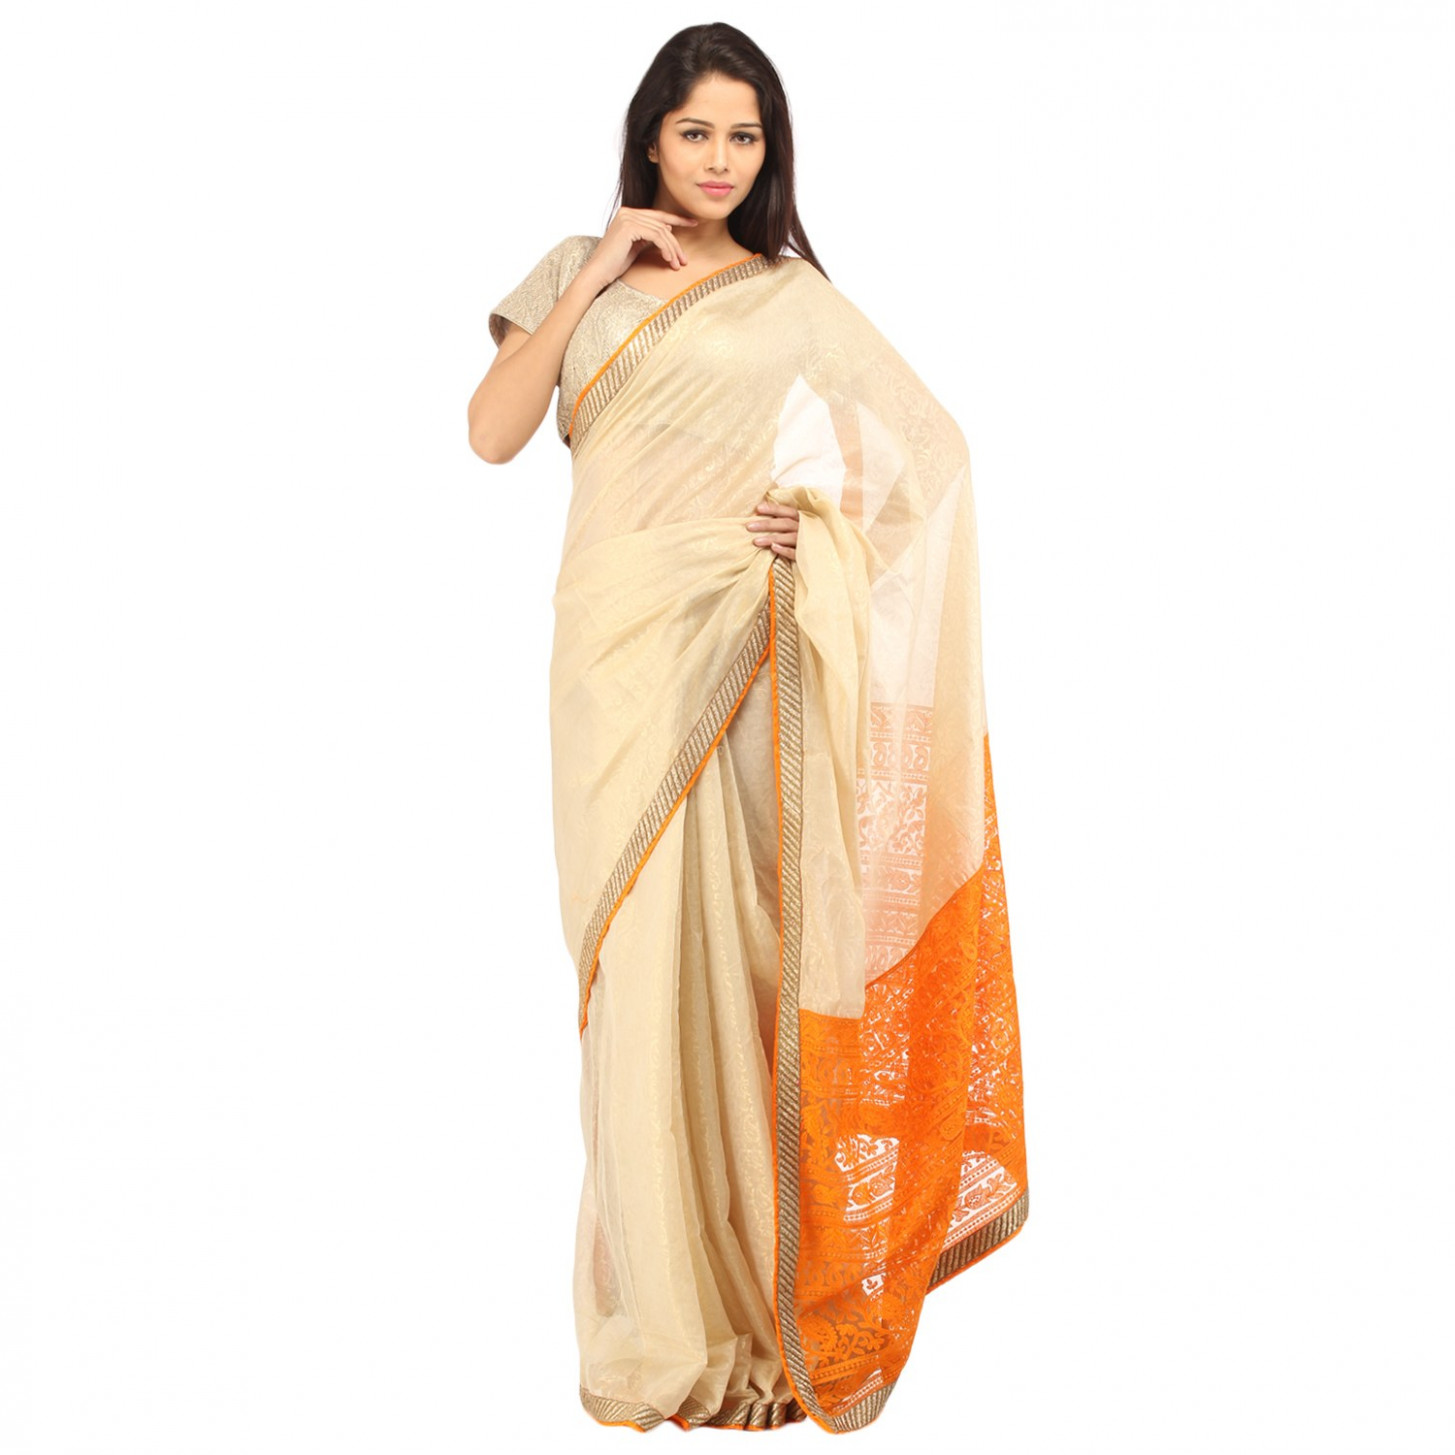 CHARMING Beige Lakhnavi Embroidered Saree-Online Shopping-4